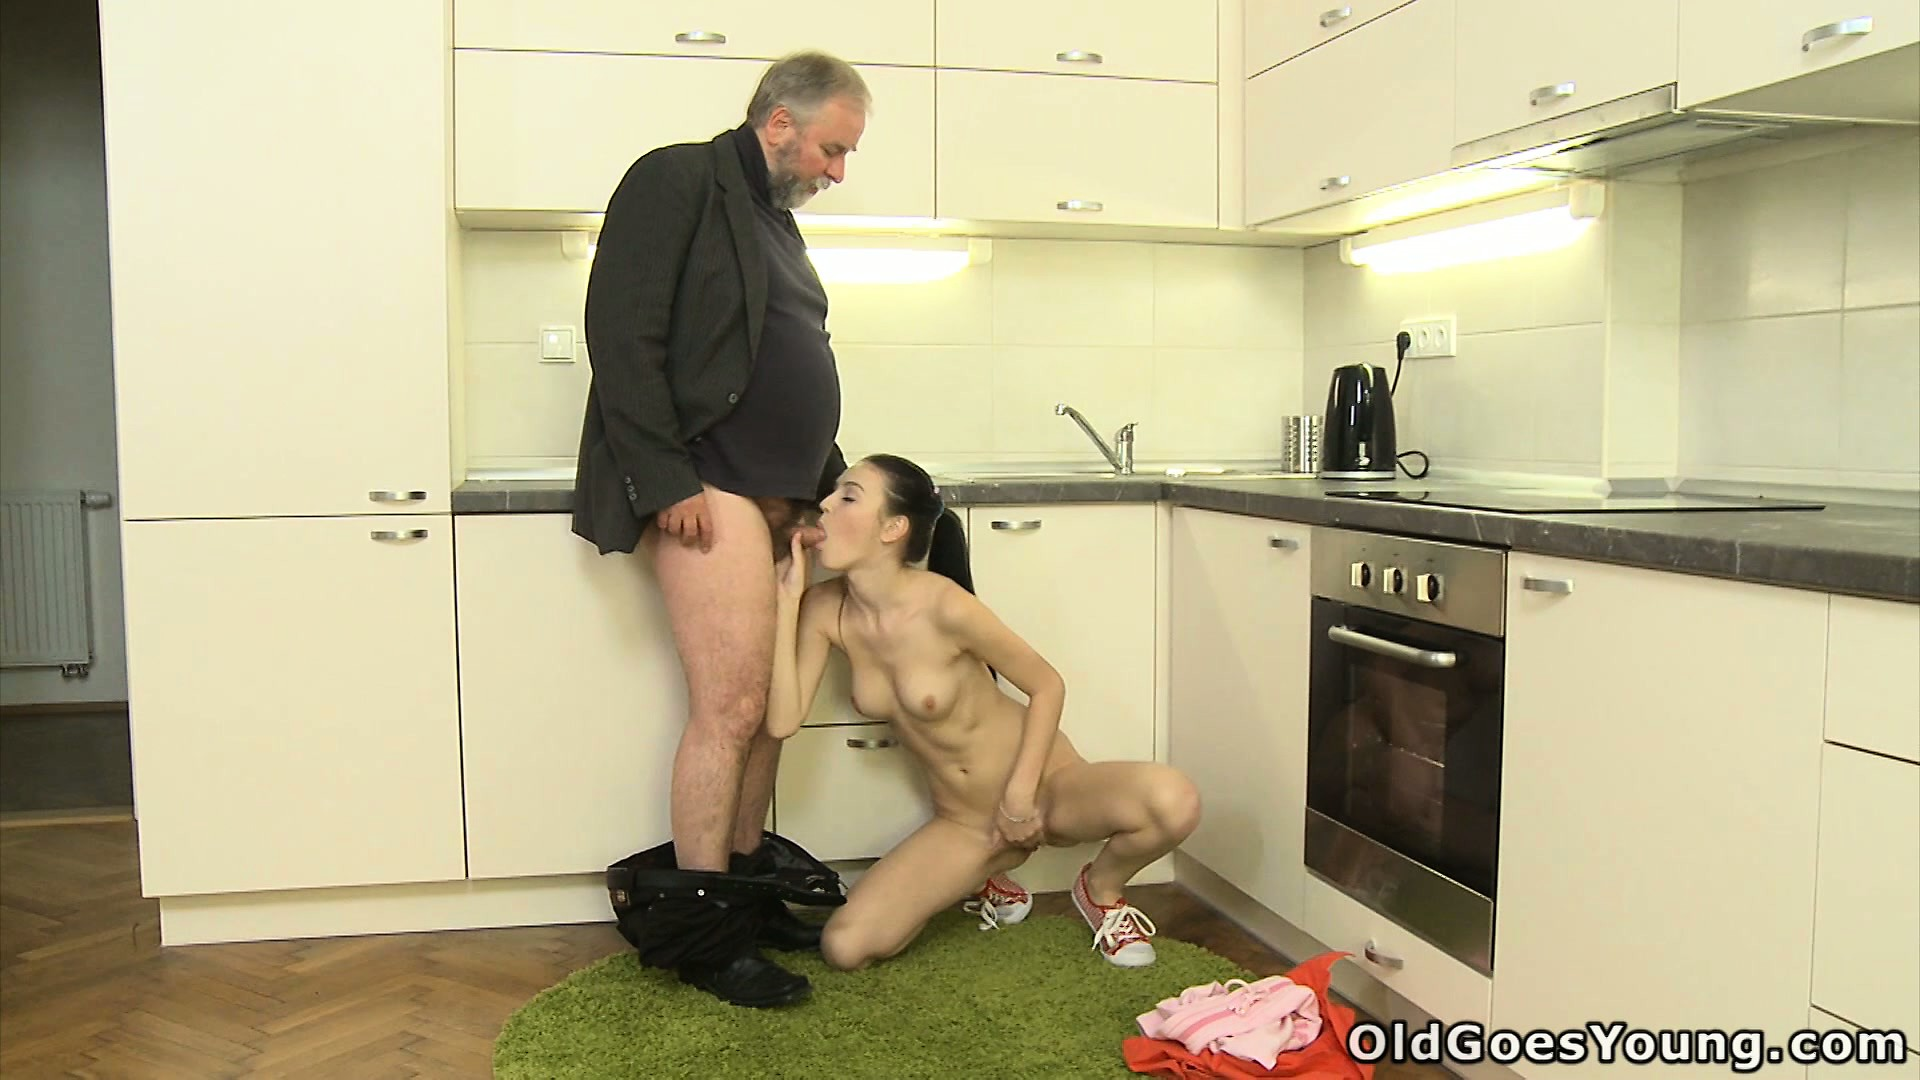 Porn Tube of Katia Lets The Old Guy Suck Her Bald Wet Pussy In The Kitchen